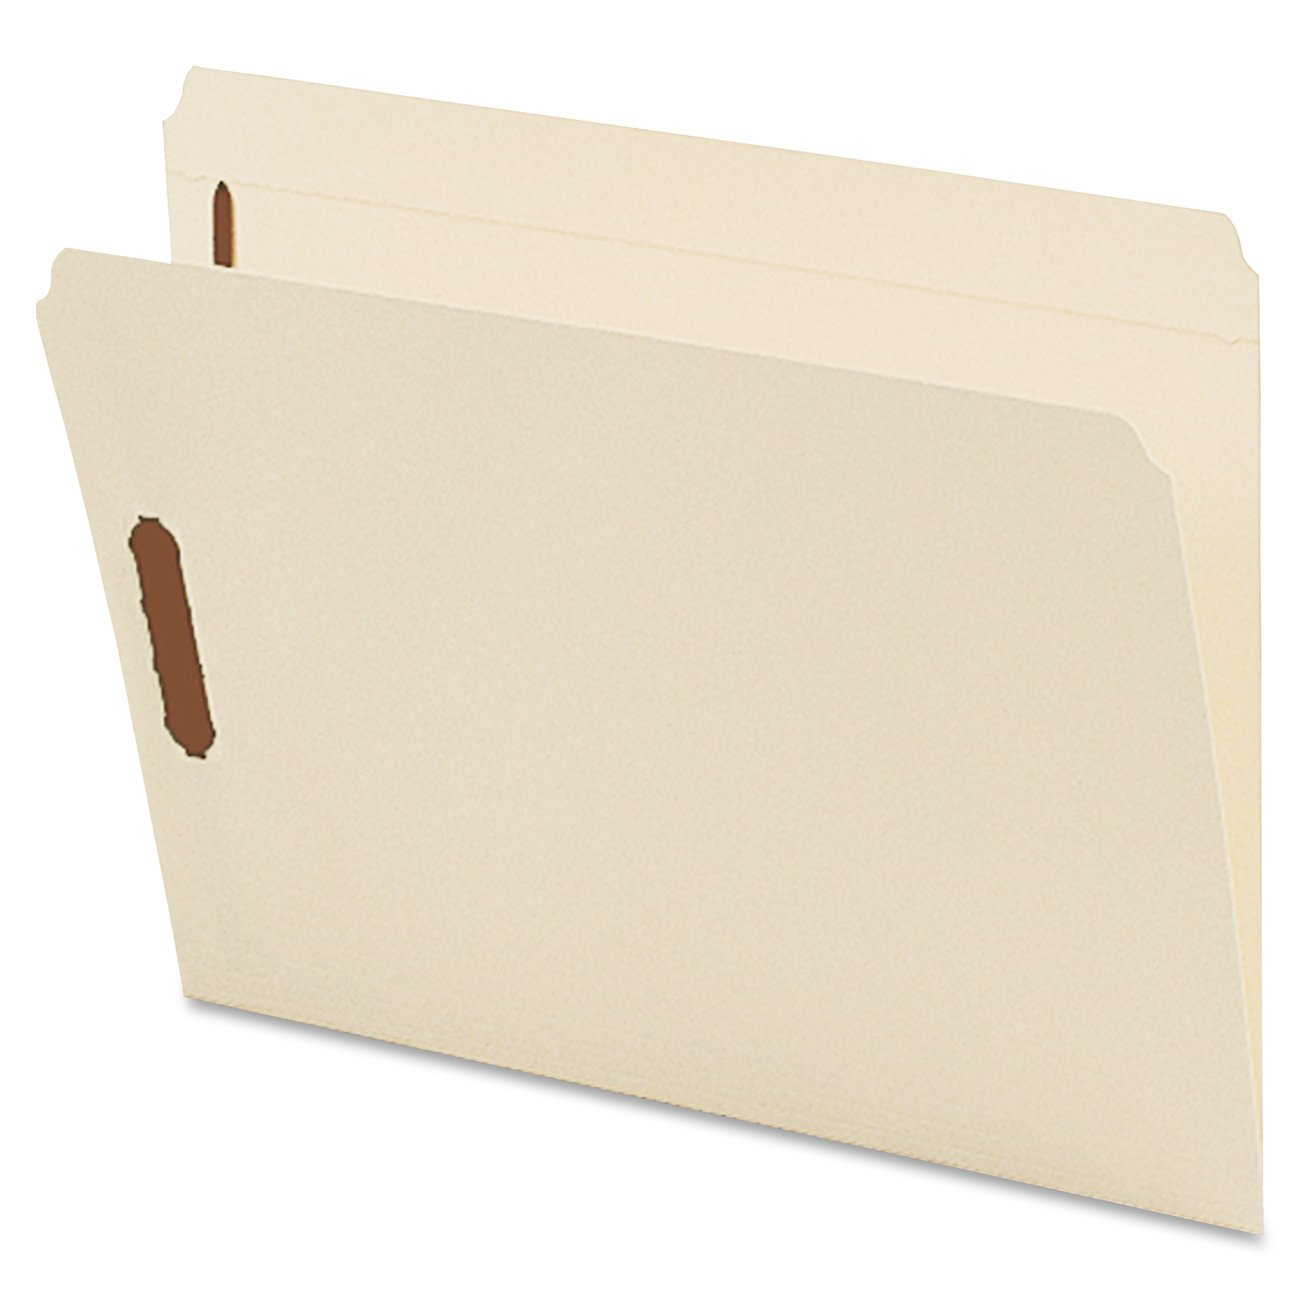 Smead Fastener File Folder, 2 Fasteners, Reinforced Straight-Cut Tab, Letter Size, Manila, 50 per Box (14513) by Smead